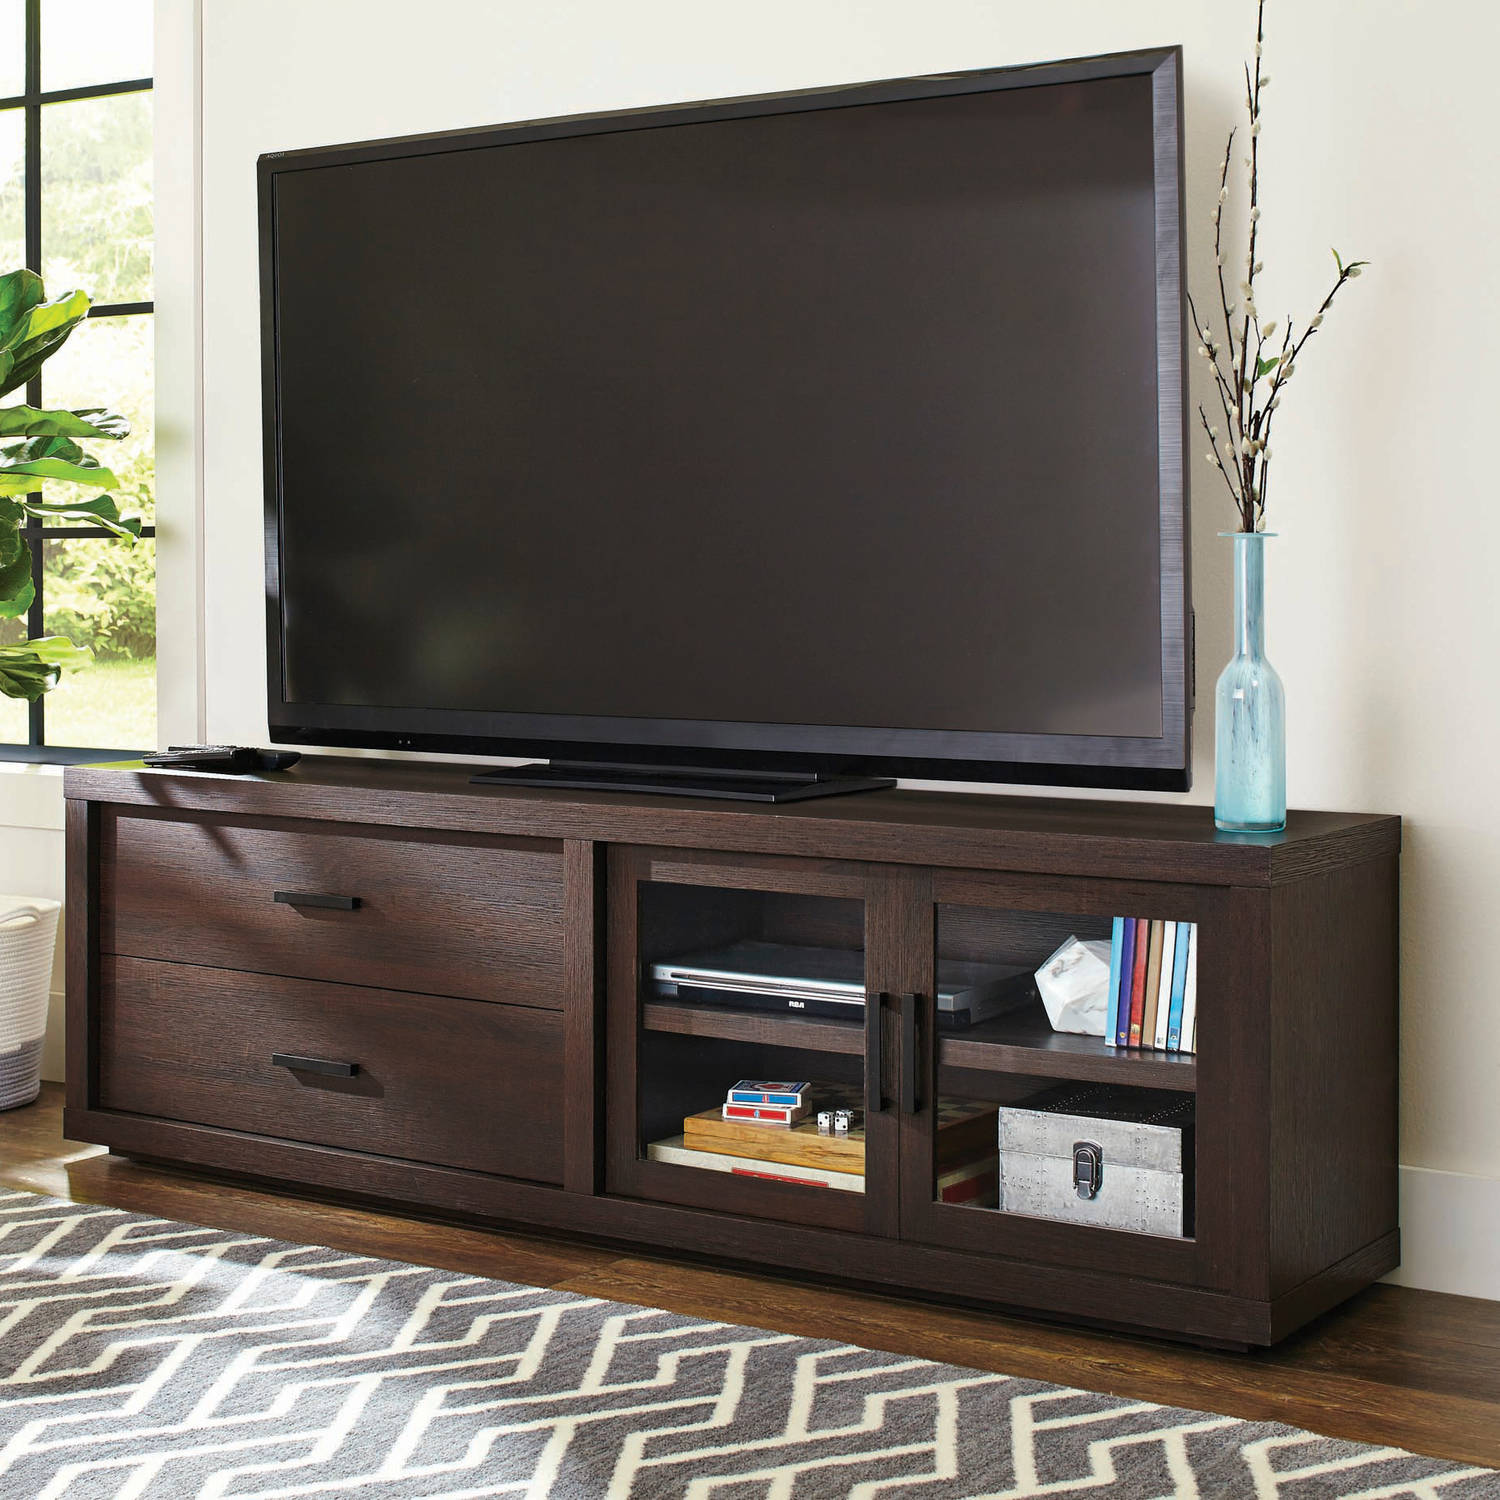 """Better Homes & Gardens Steele TV Stand for TV's up to 80"""", Espresso Finish"""